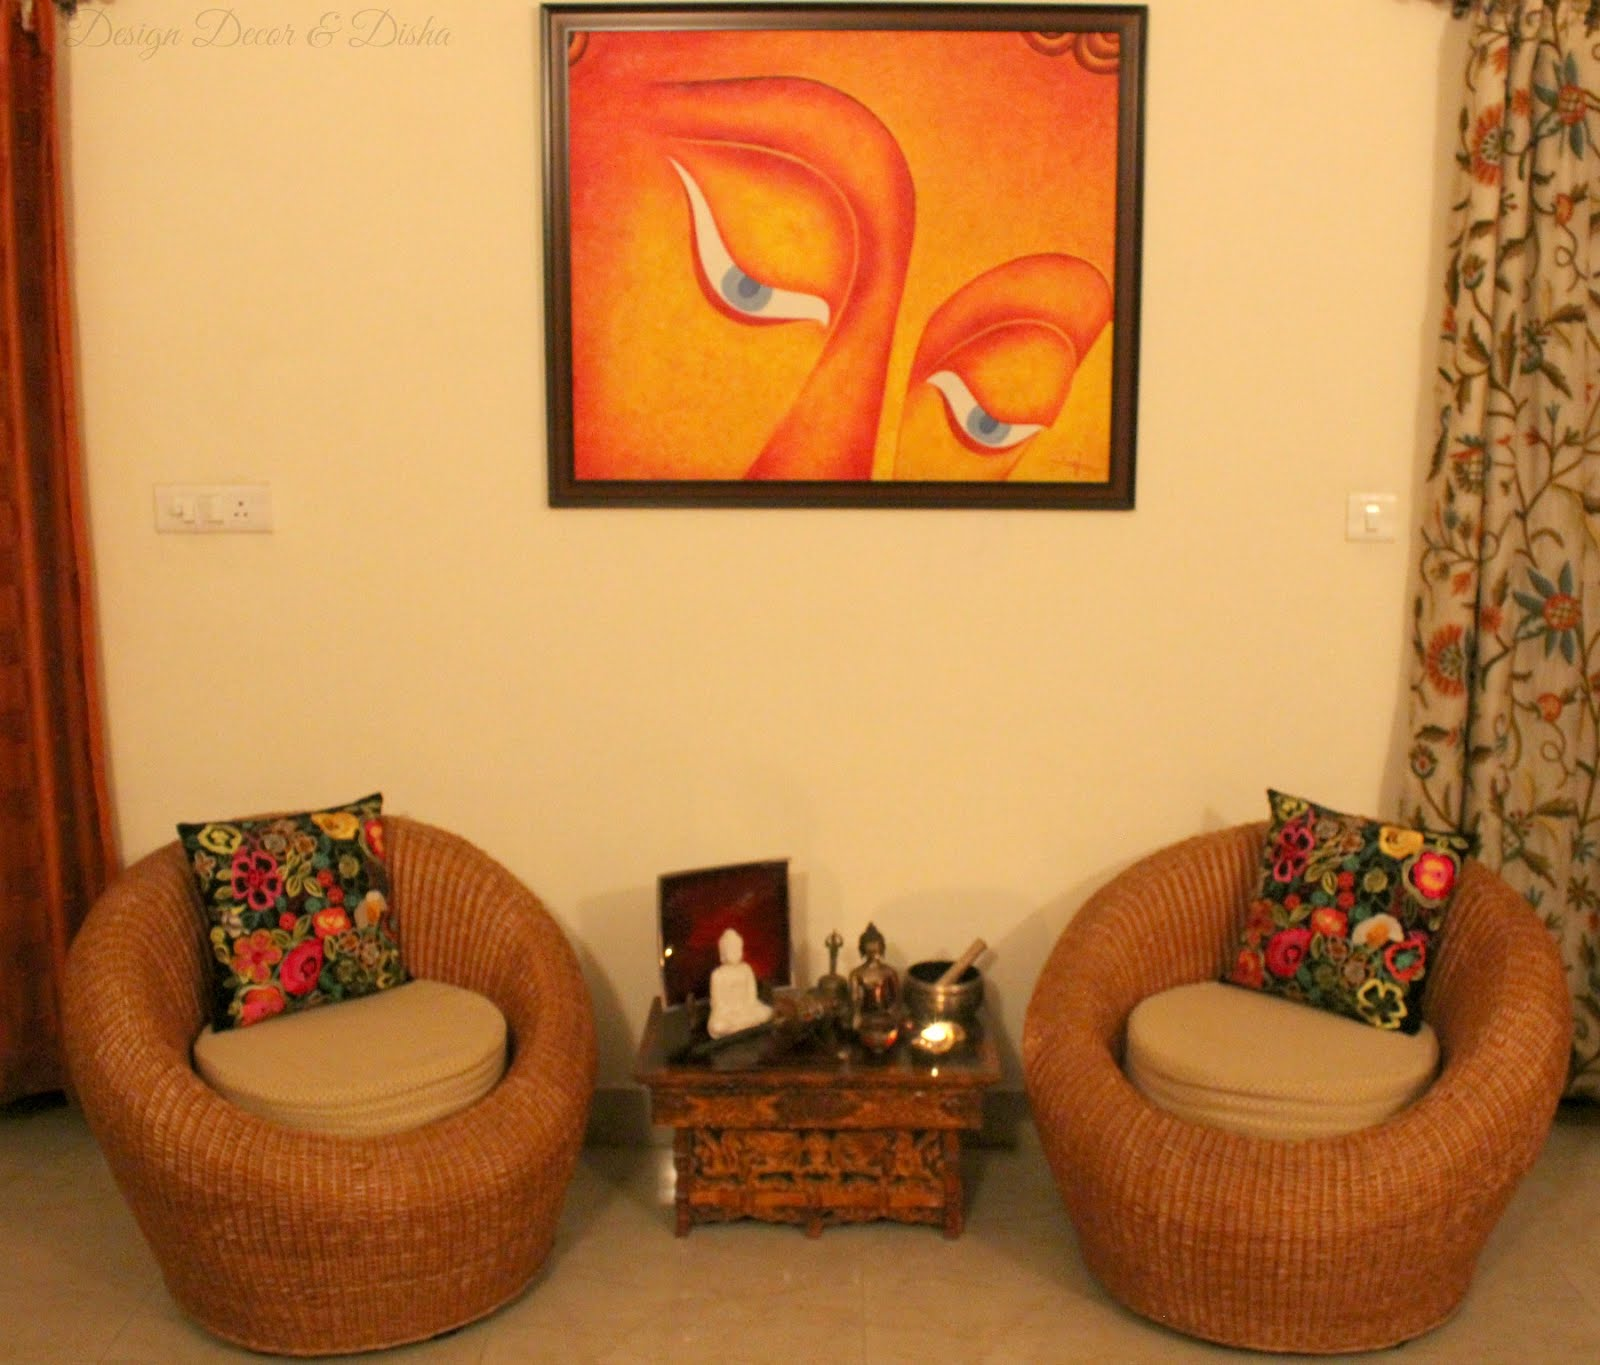 Design decor disha an indian design decor blog home for House decoration stuff